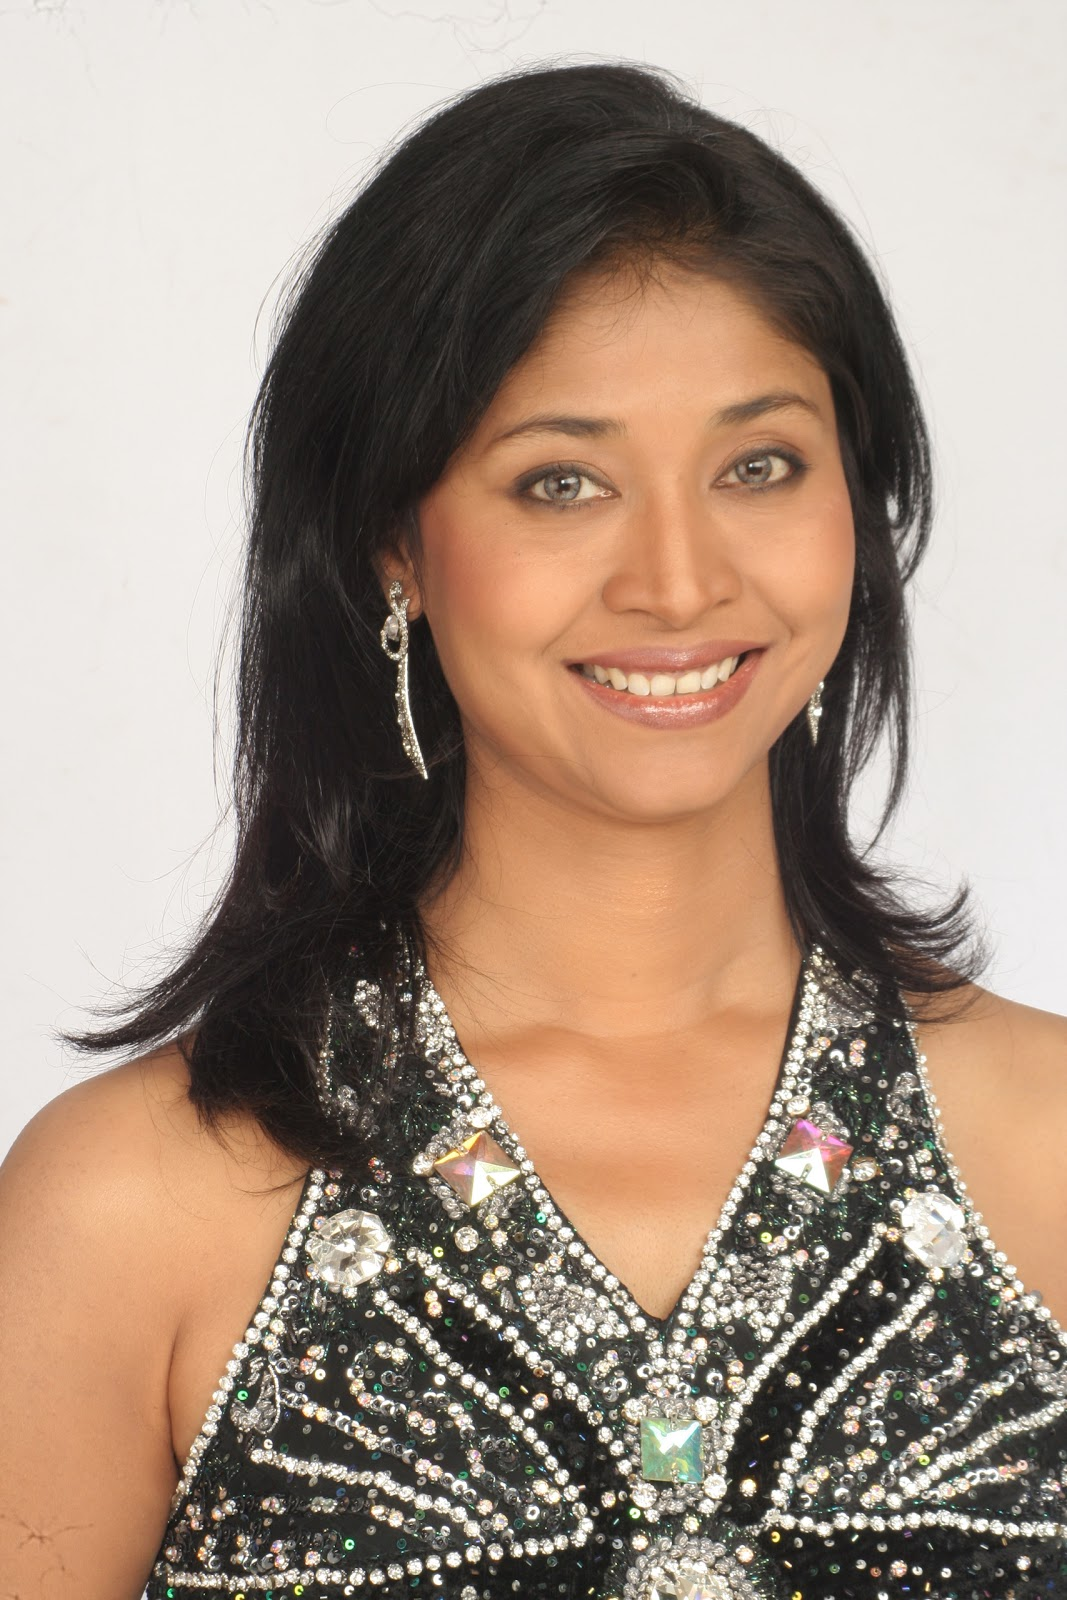 sujata bhatt the star Learn about sujata bhatt: her birthday, what she did before fame, her family life, fun trivia facts, popularity rankings, and more.